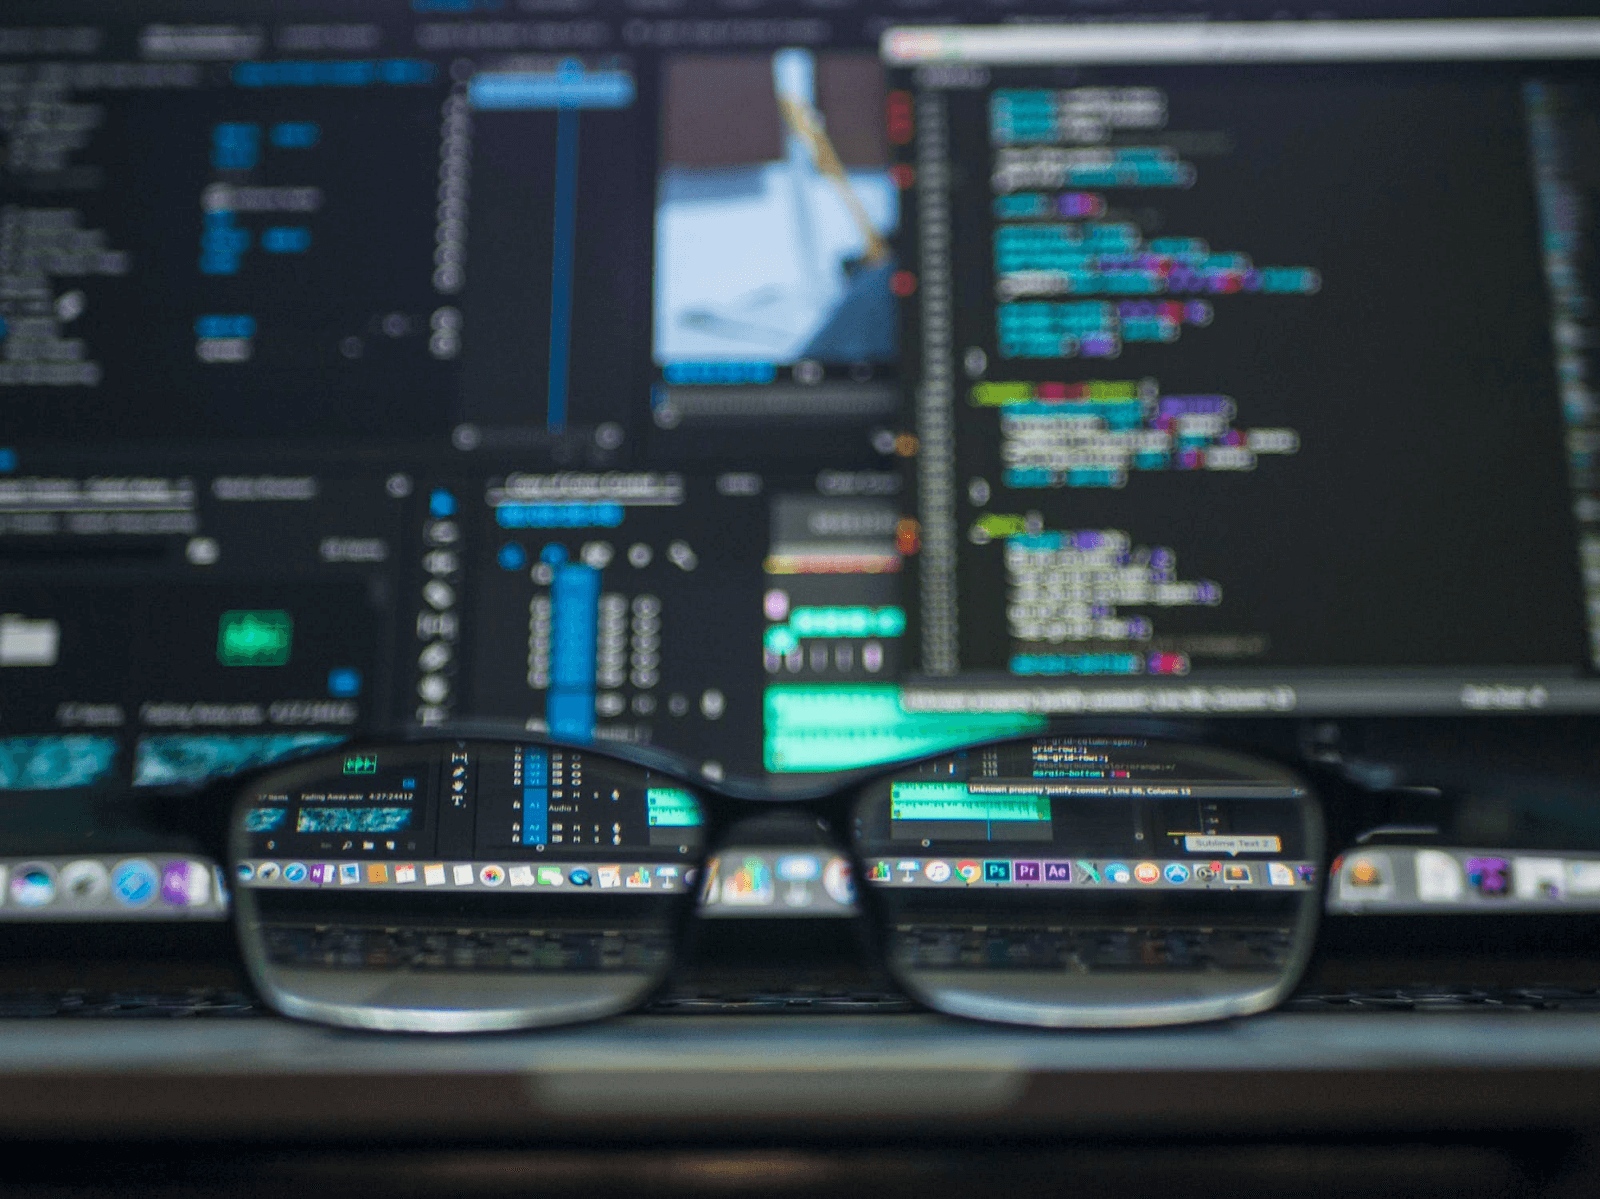 glasses in front of a blurred computer screen